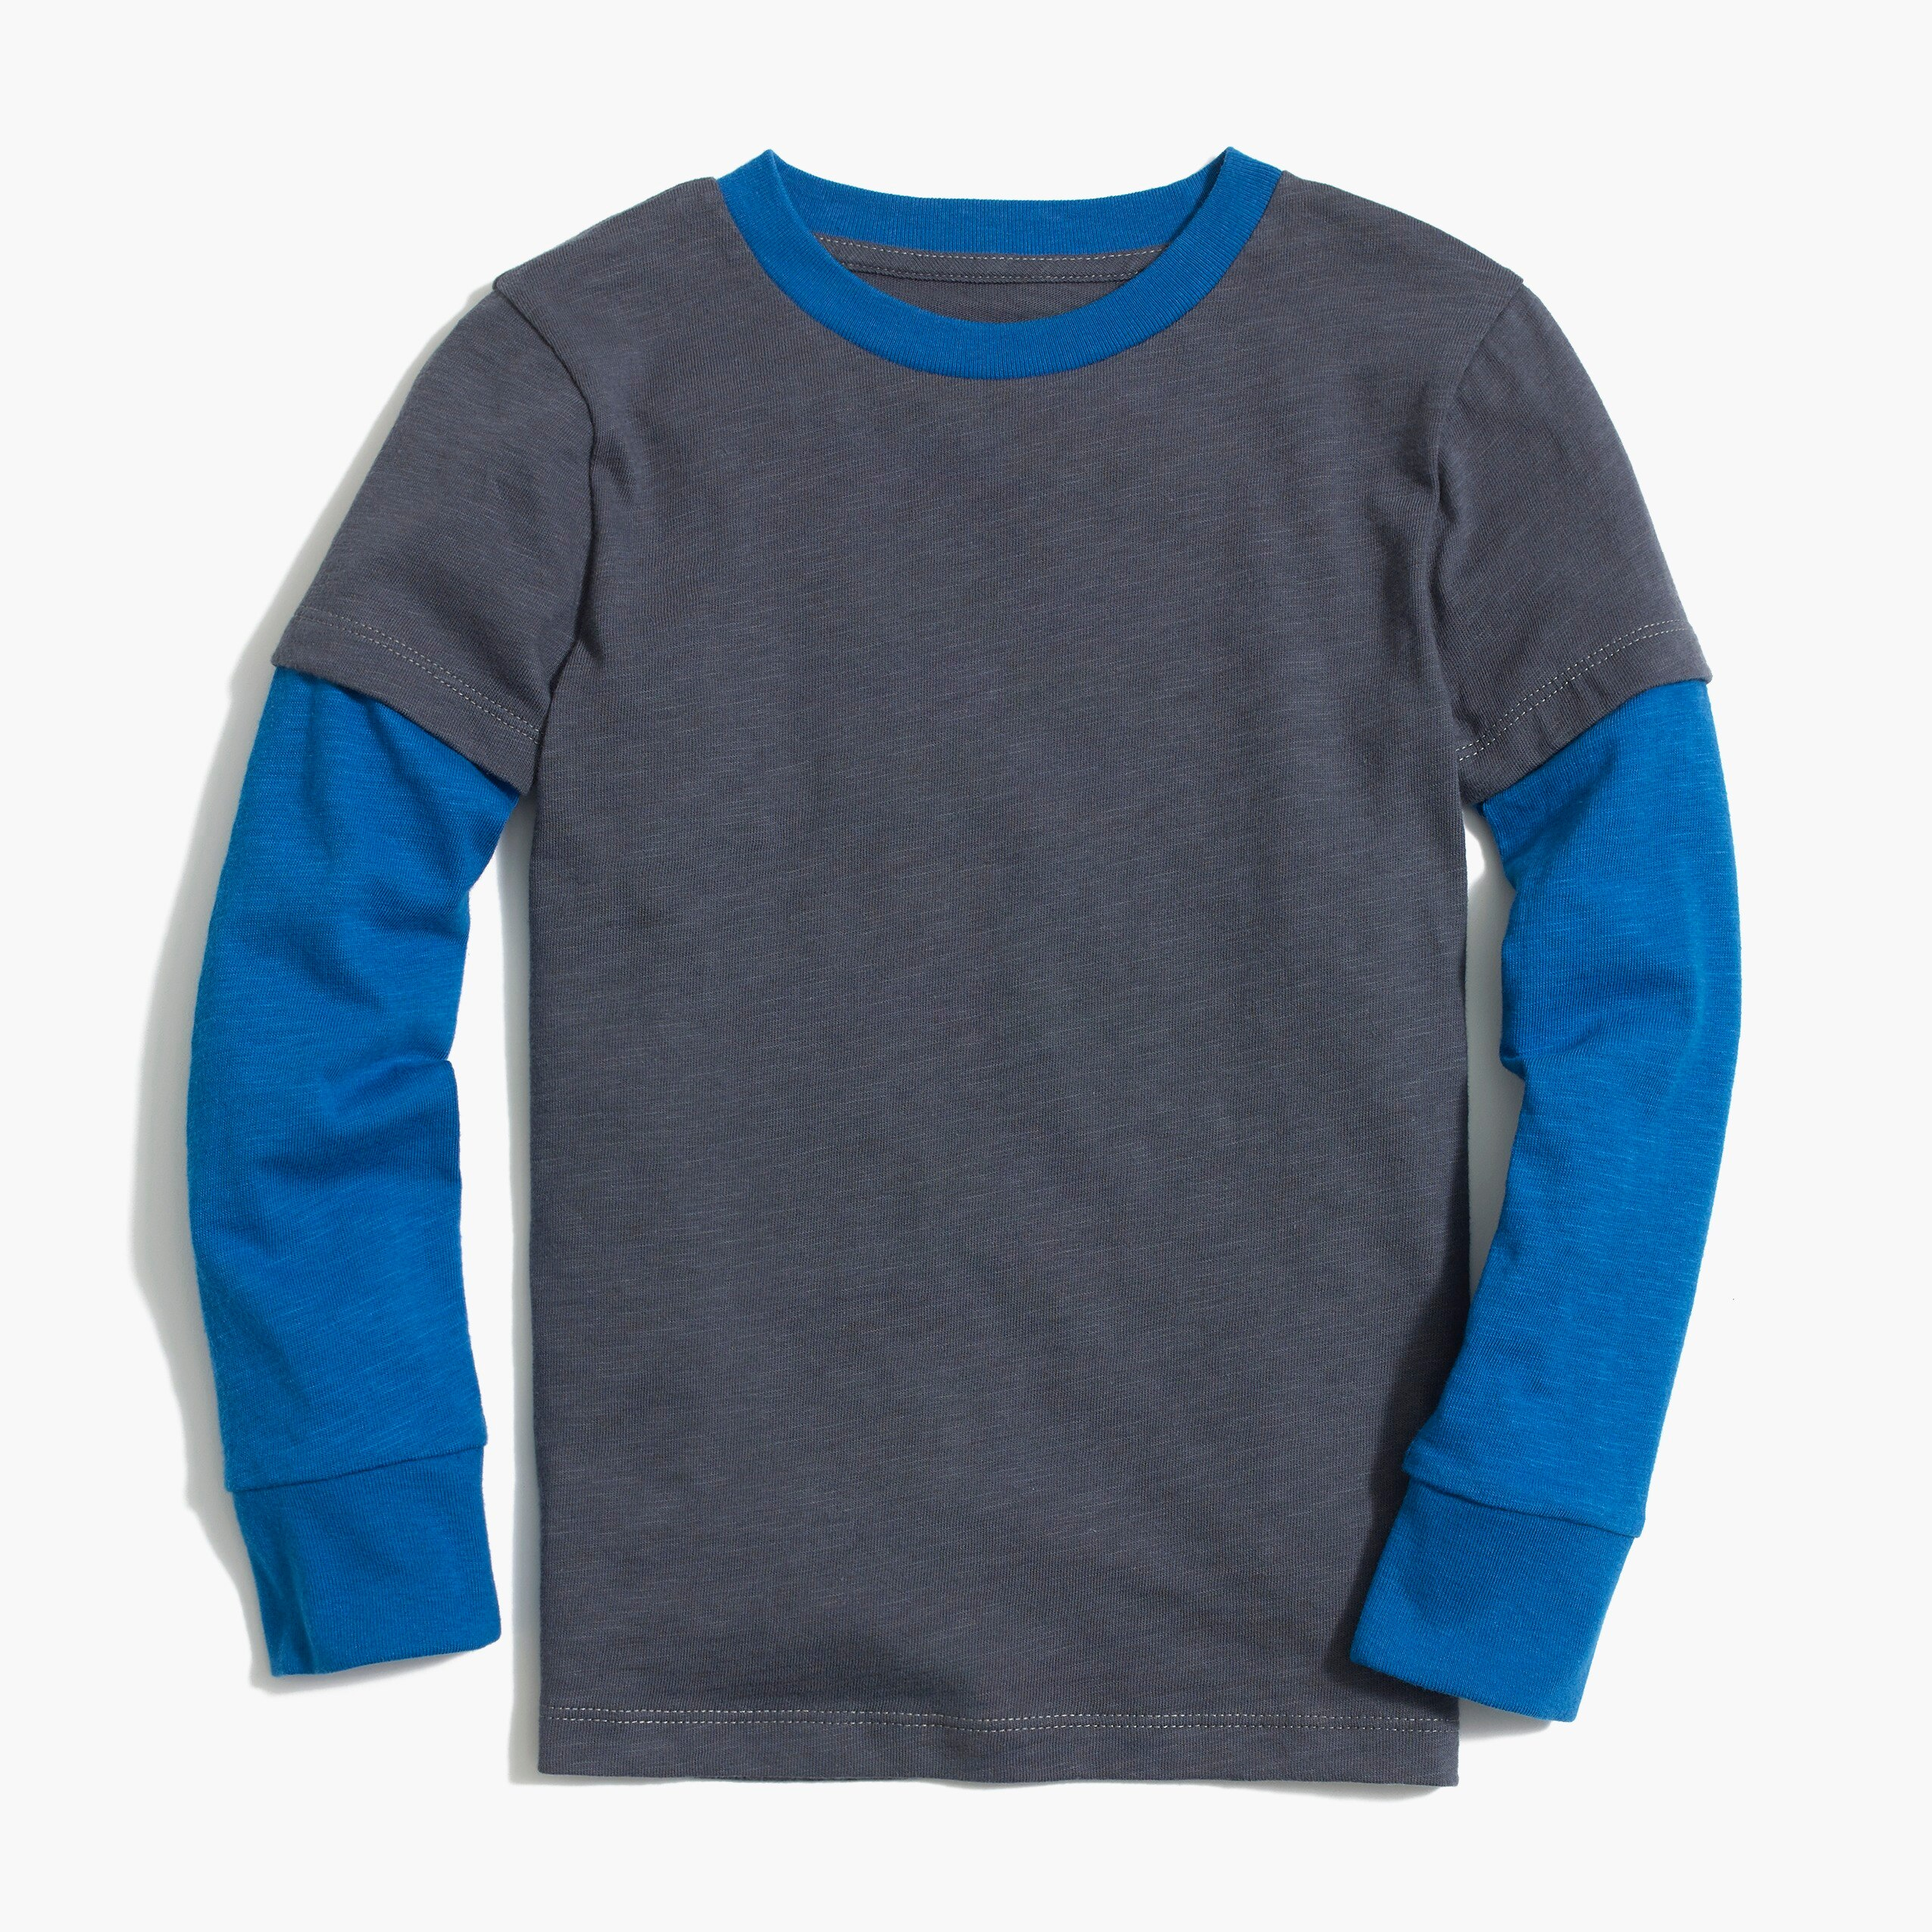 Boys' long-sleeve slub cotton layered T-shirt